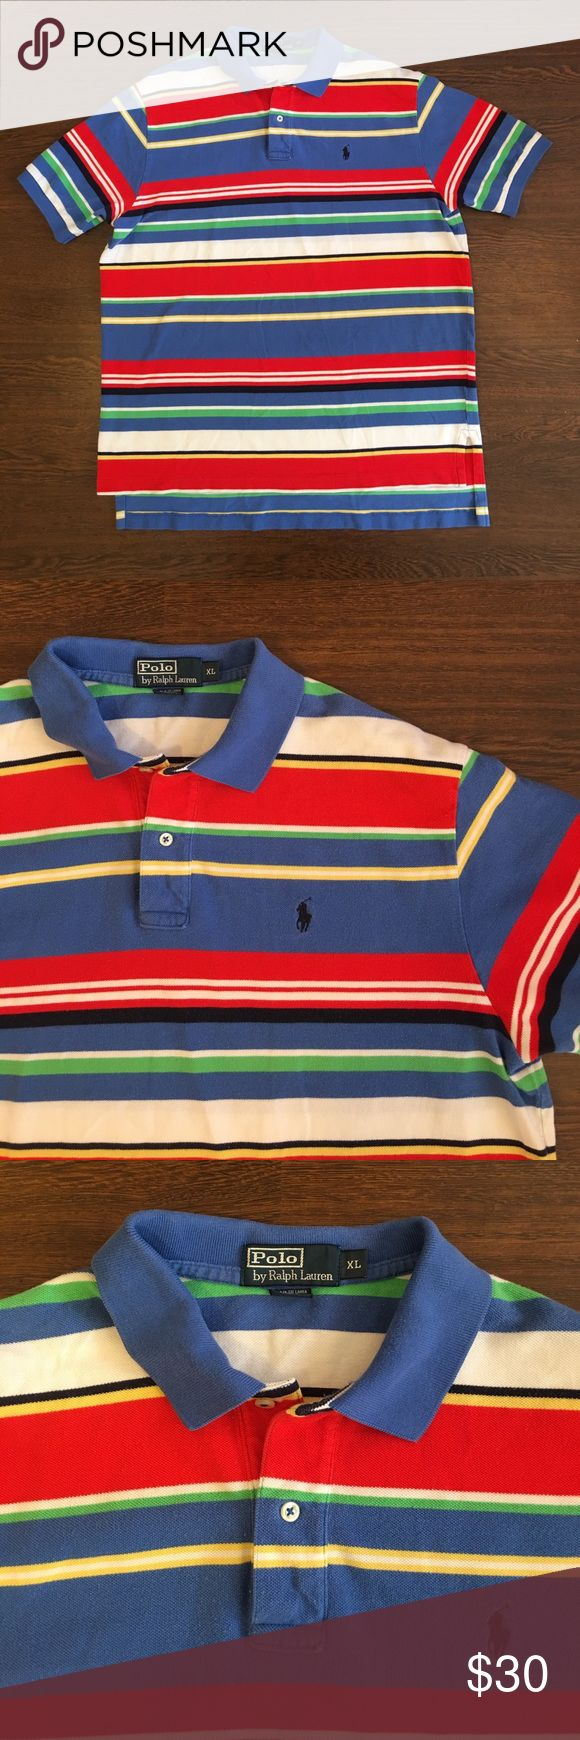 🔥SALE🔥 Polo By Ralph Lauren Striped Polo Shirt Polo By Ralph Lauren Multicolor Striped Polo Shirt. Men's Size XL. Lightly Worn. Overall Good Pre Owned Condition. Polo by Ralph Lauren Shirts Polos